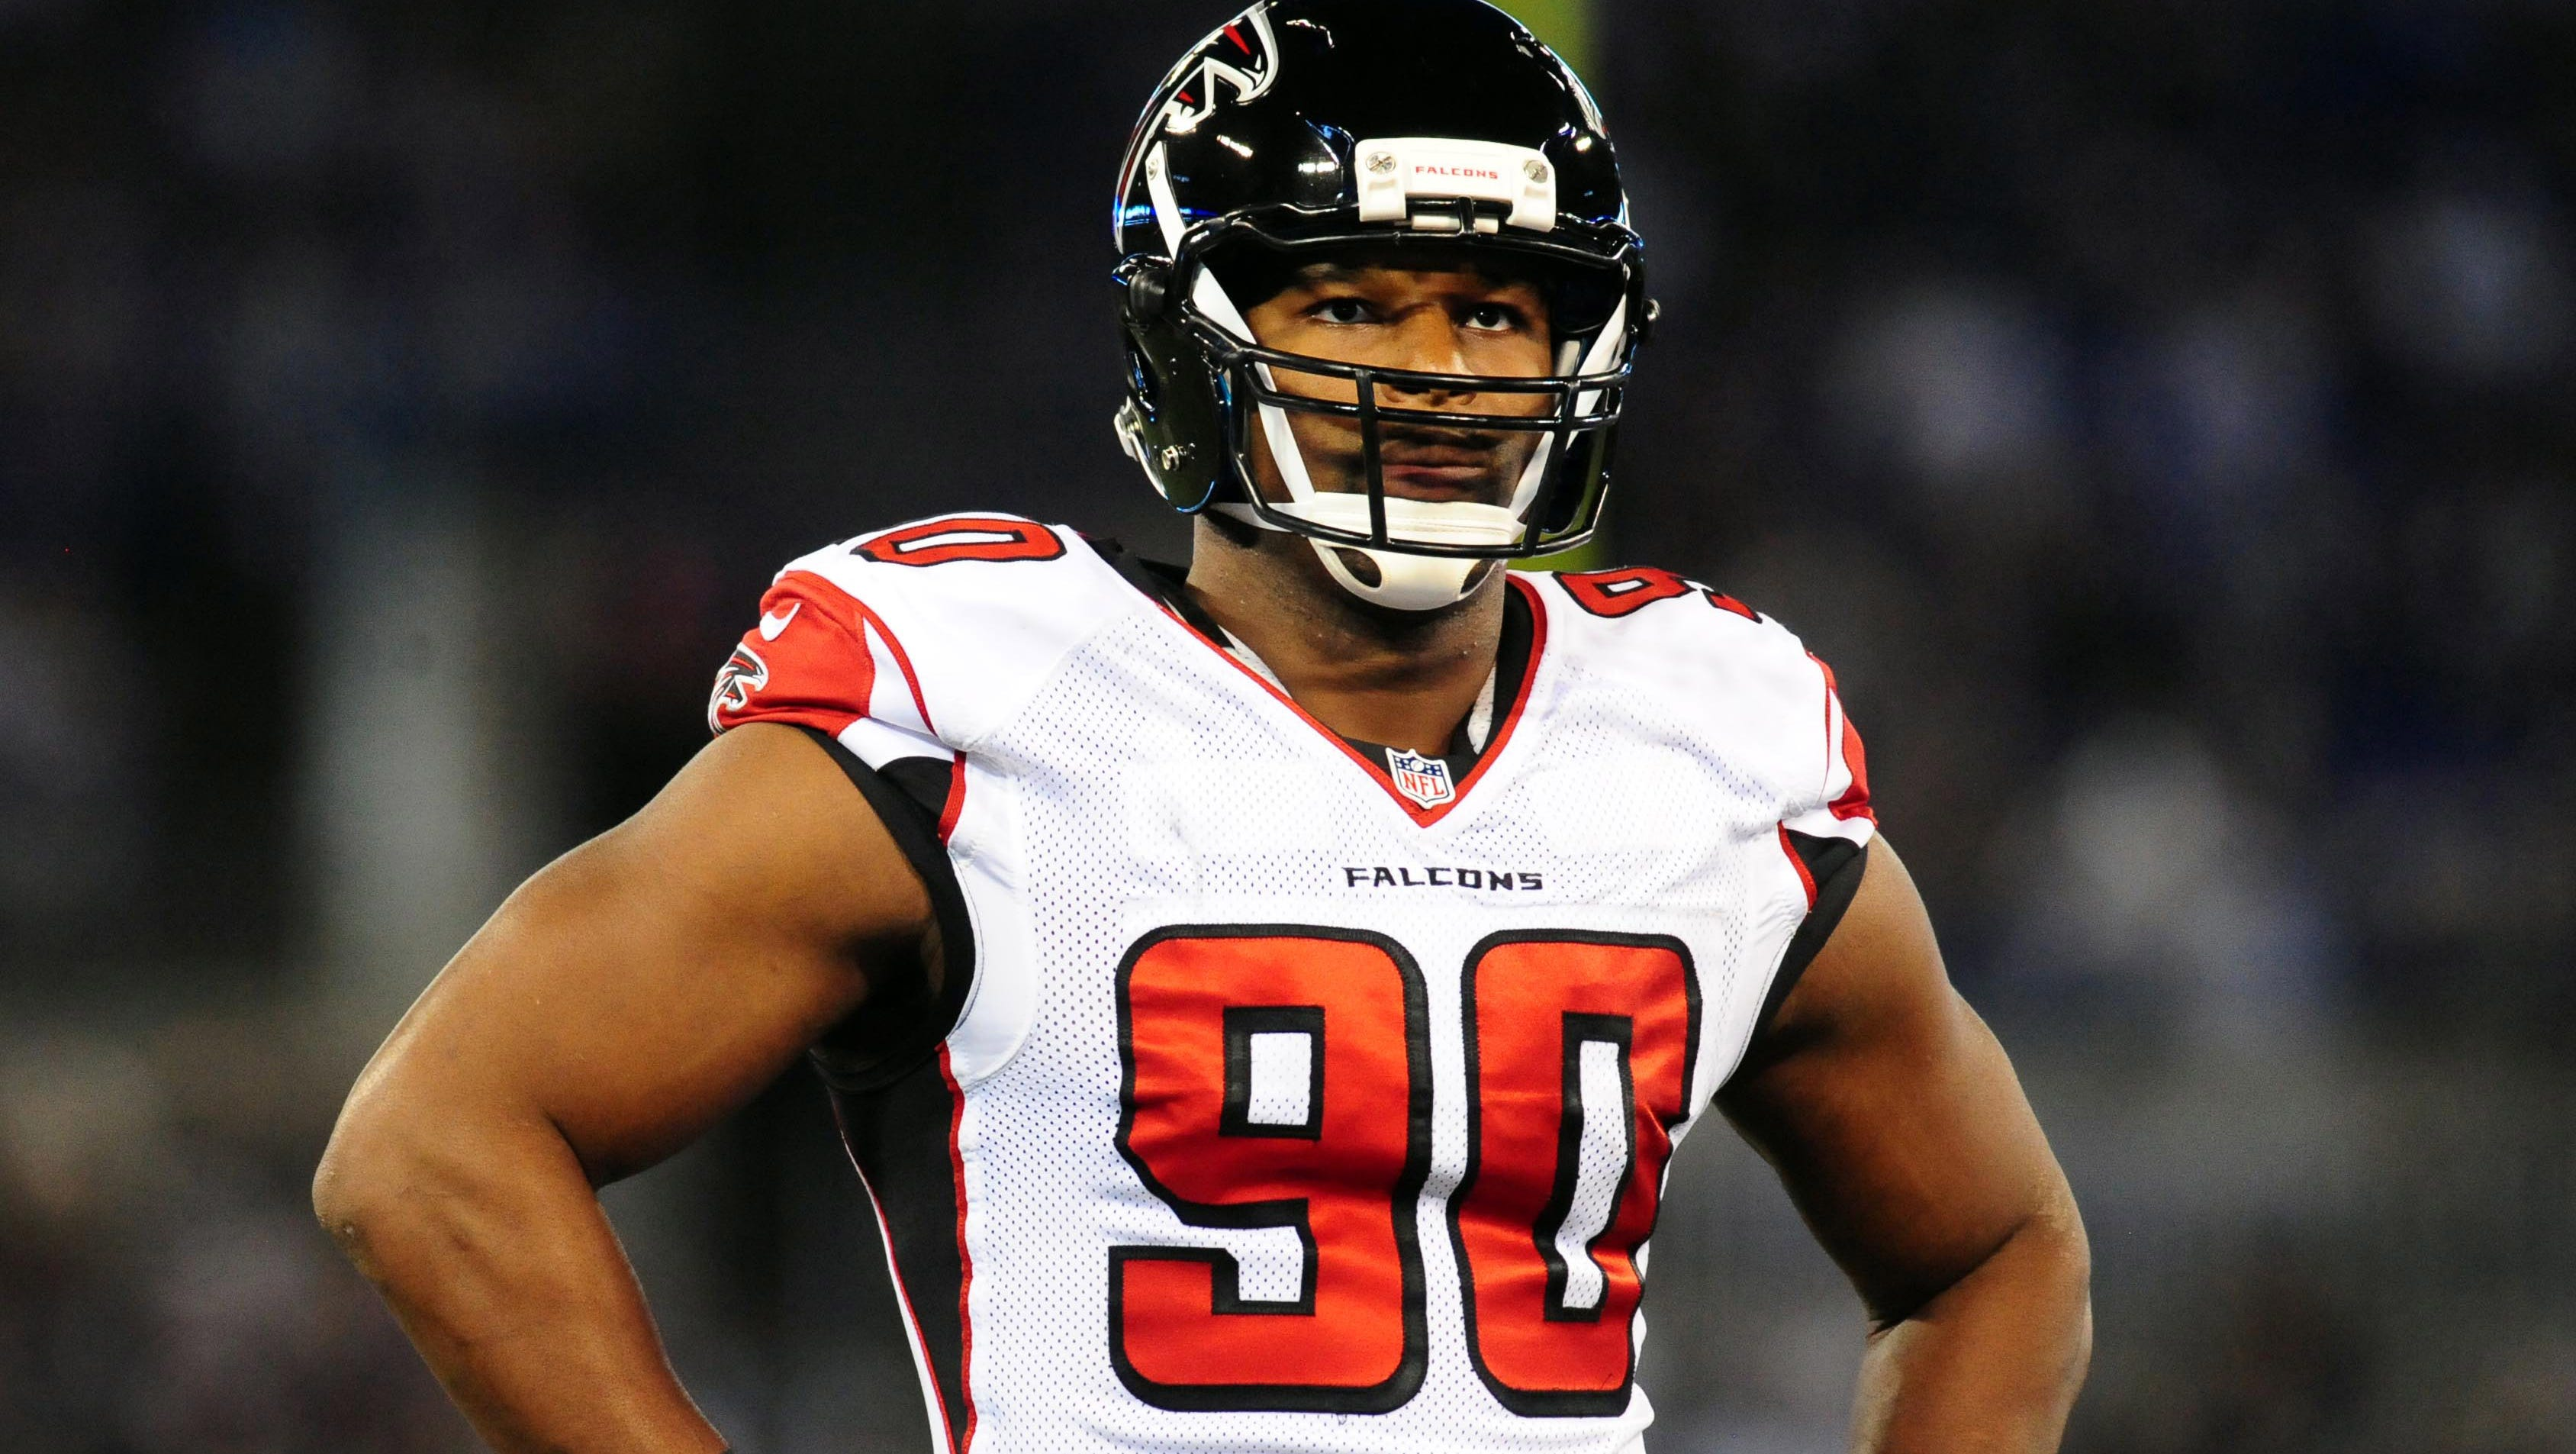 How much did Osi Umenyiora pay for his new number?